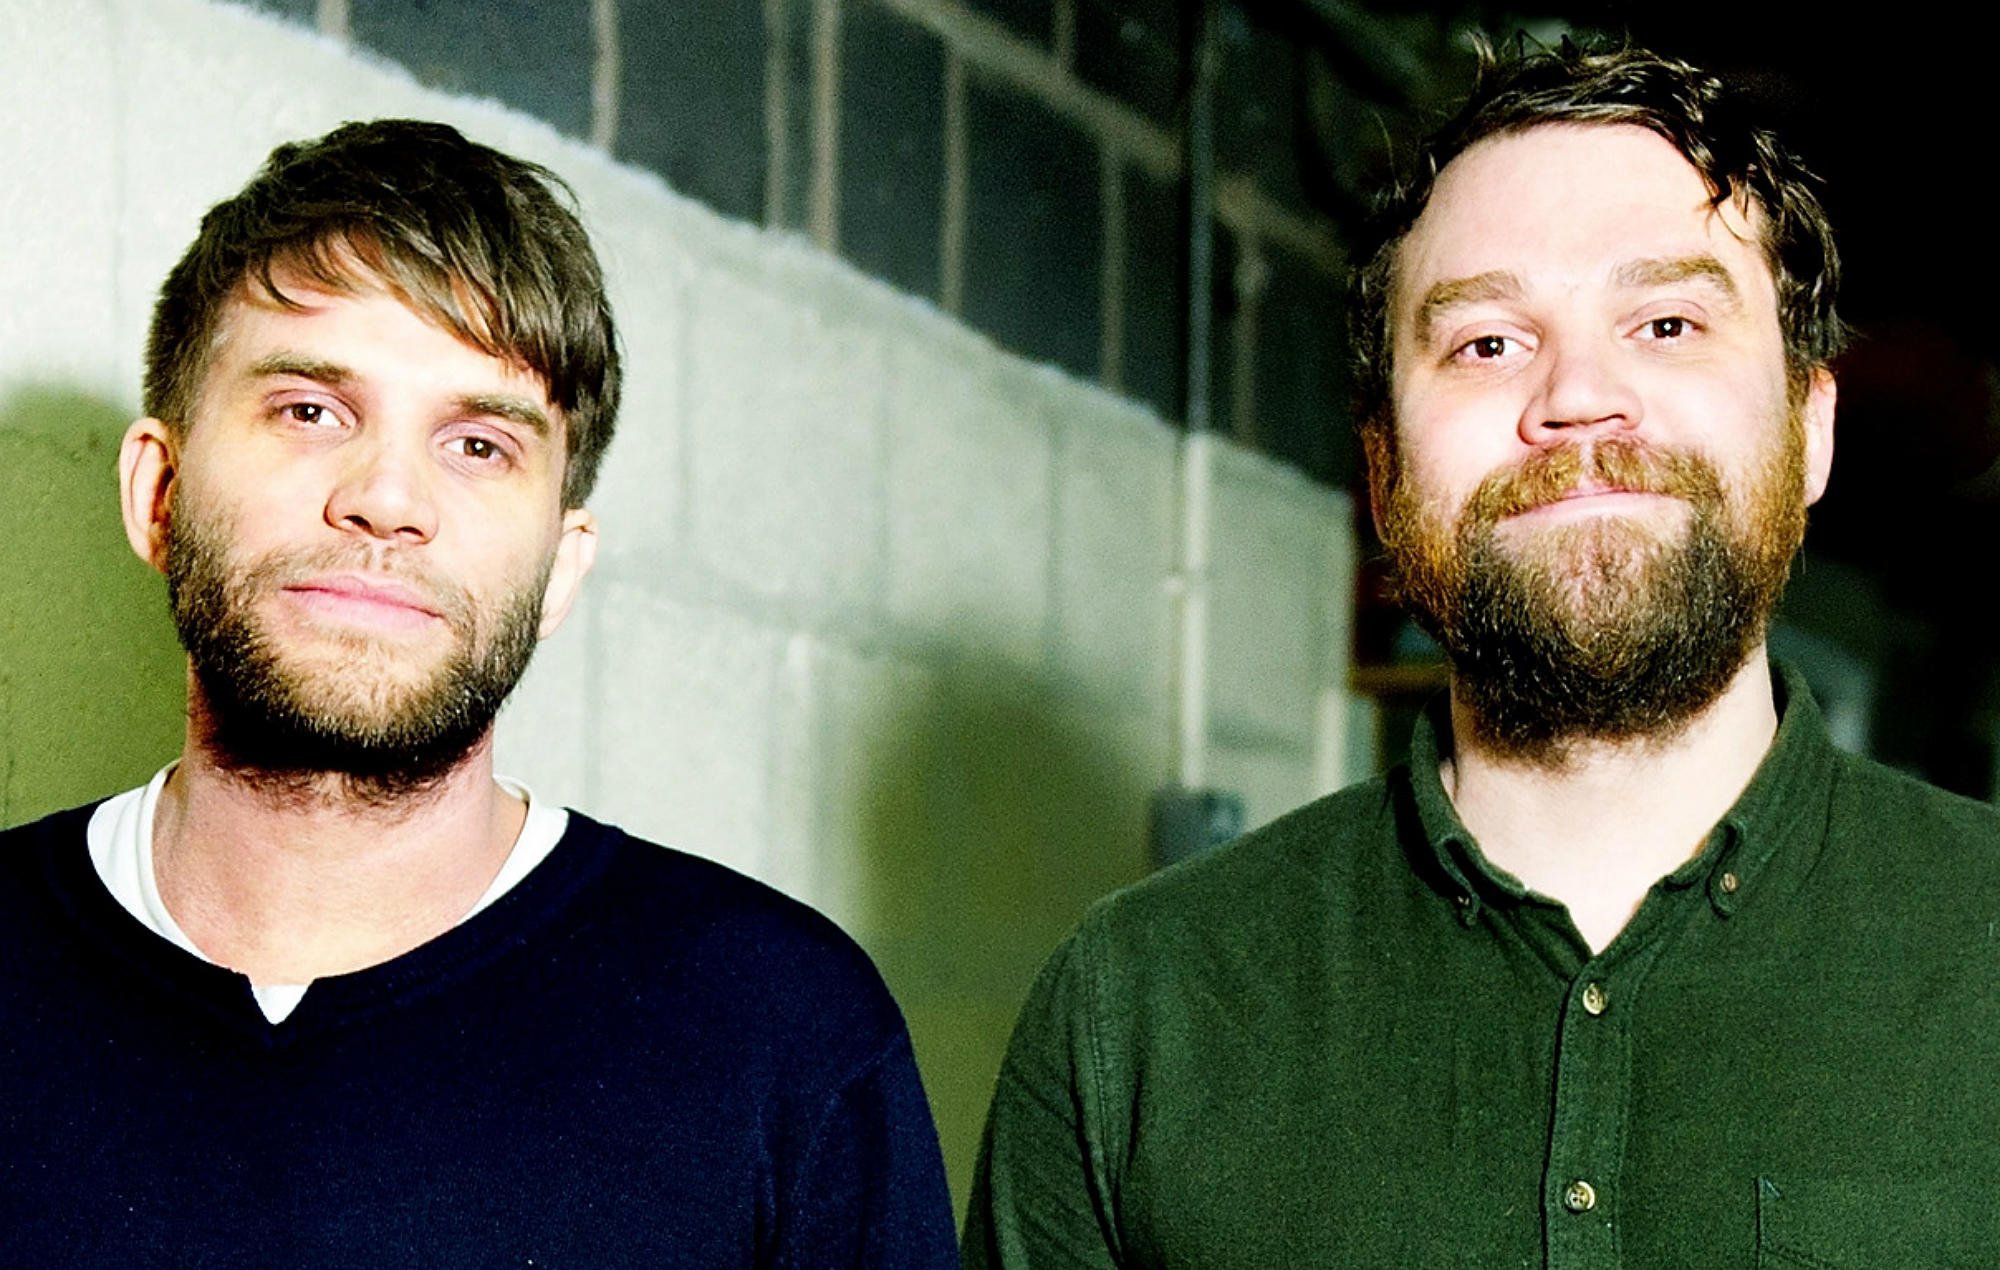 Scott Hutchison's brother Grant calls for more government action to help prevent suicide https://t.co/tZ96JJScFp https://t.co/t7SF4jEpQb